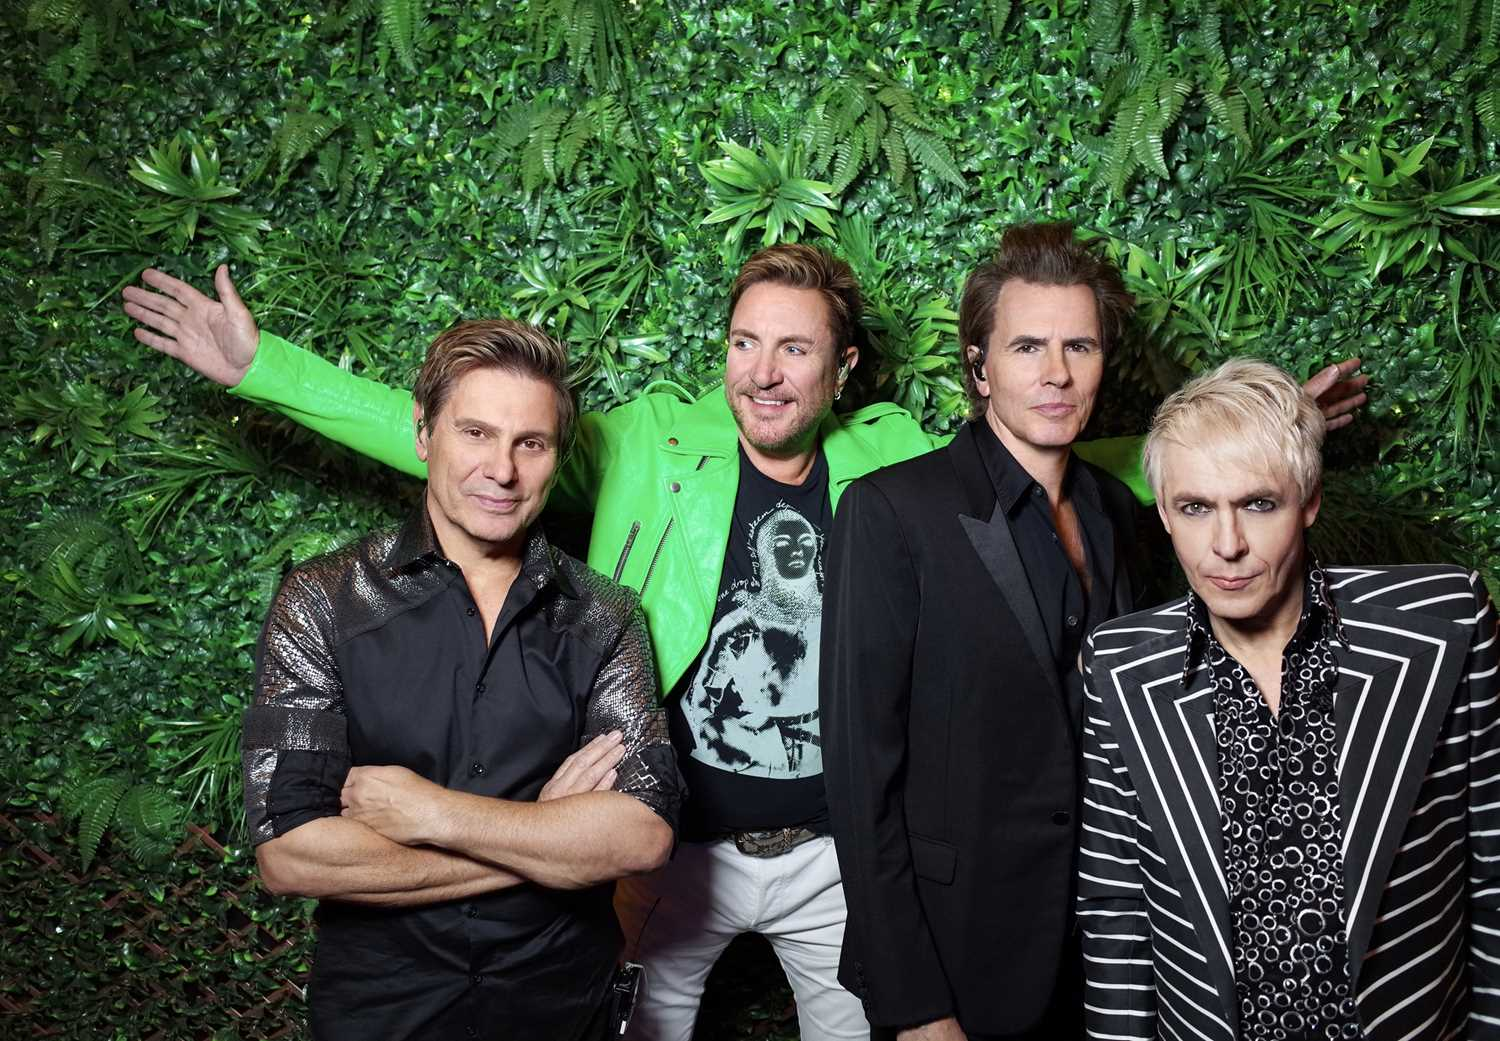 Duran Duran Meet & Greet Concert Tickets for 2 at St Anne's Park, Dublin A superb opportunity for